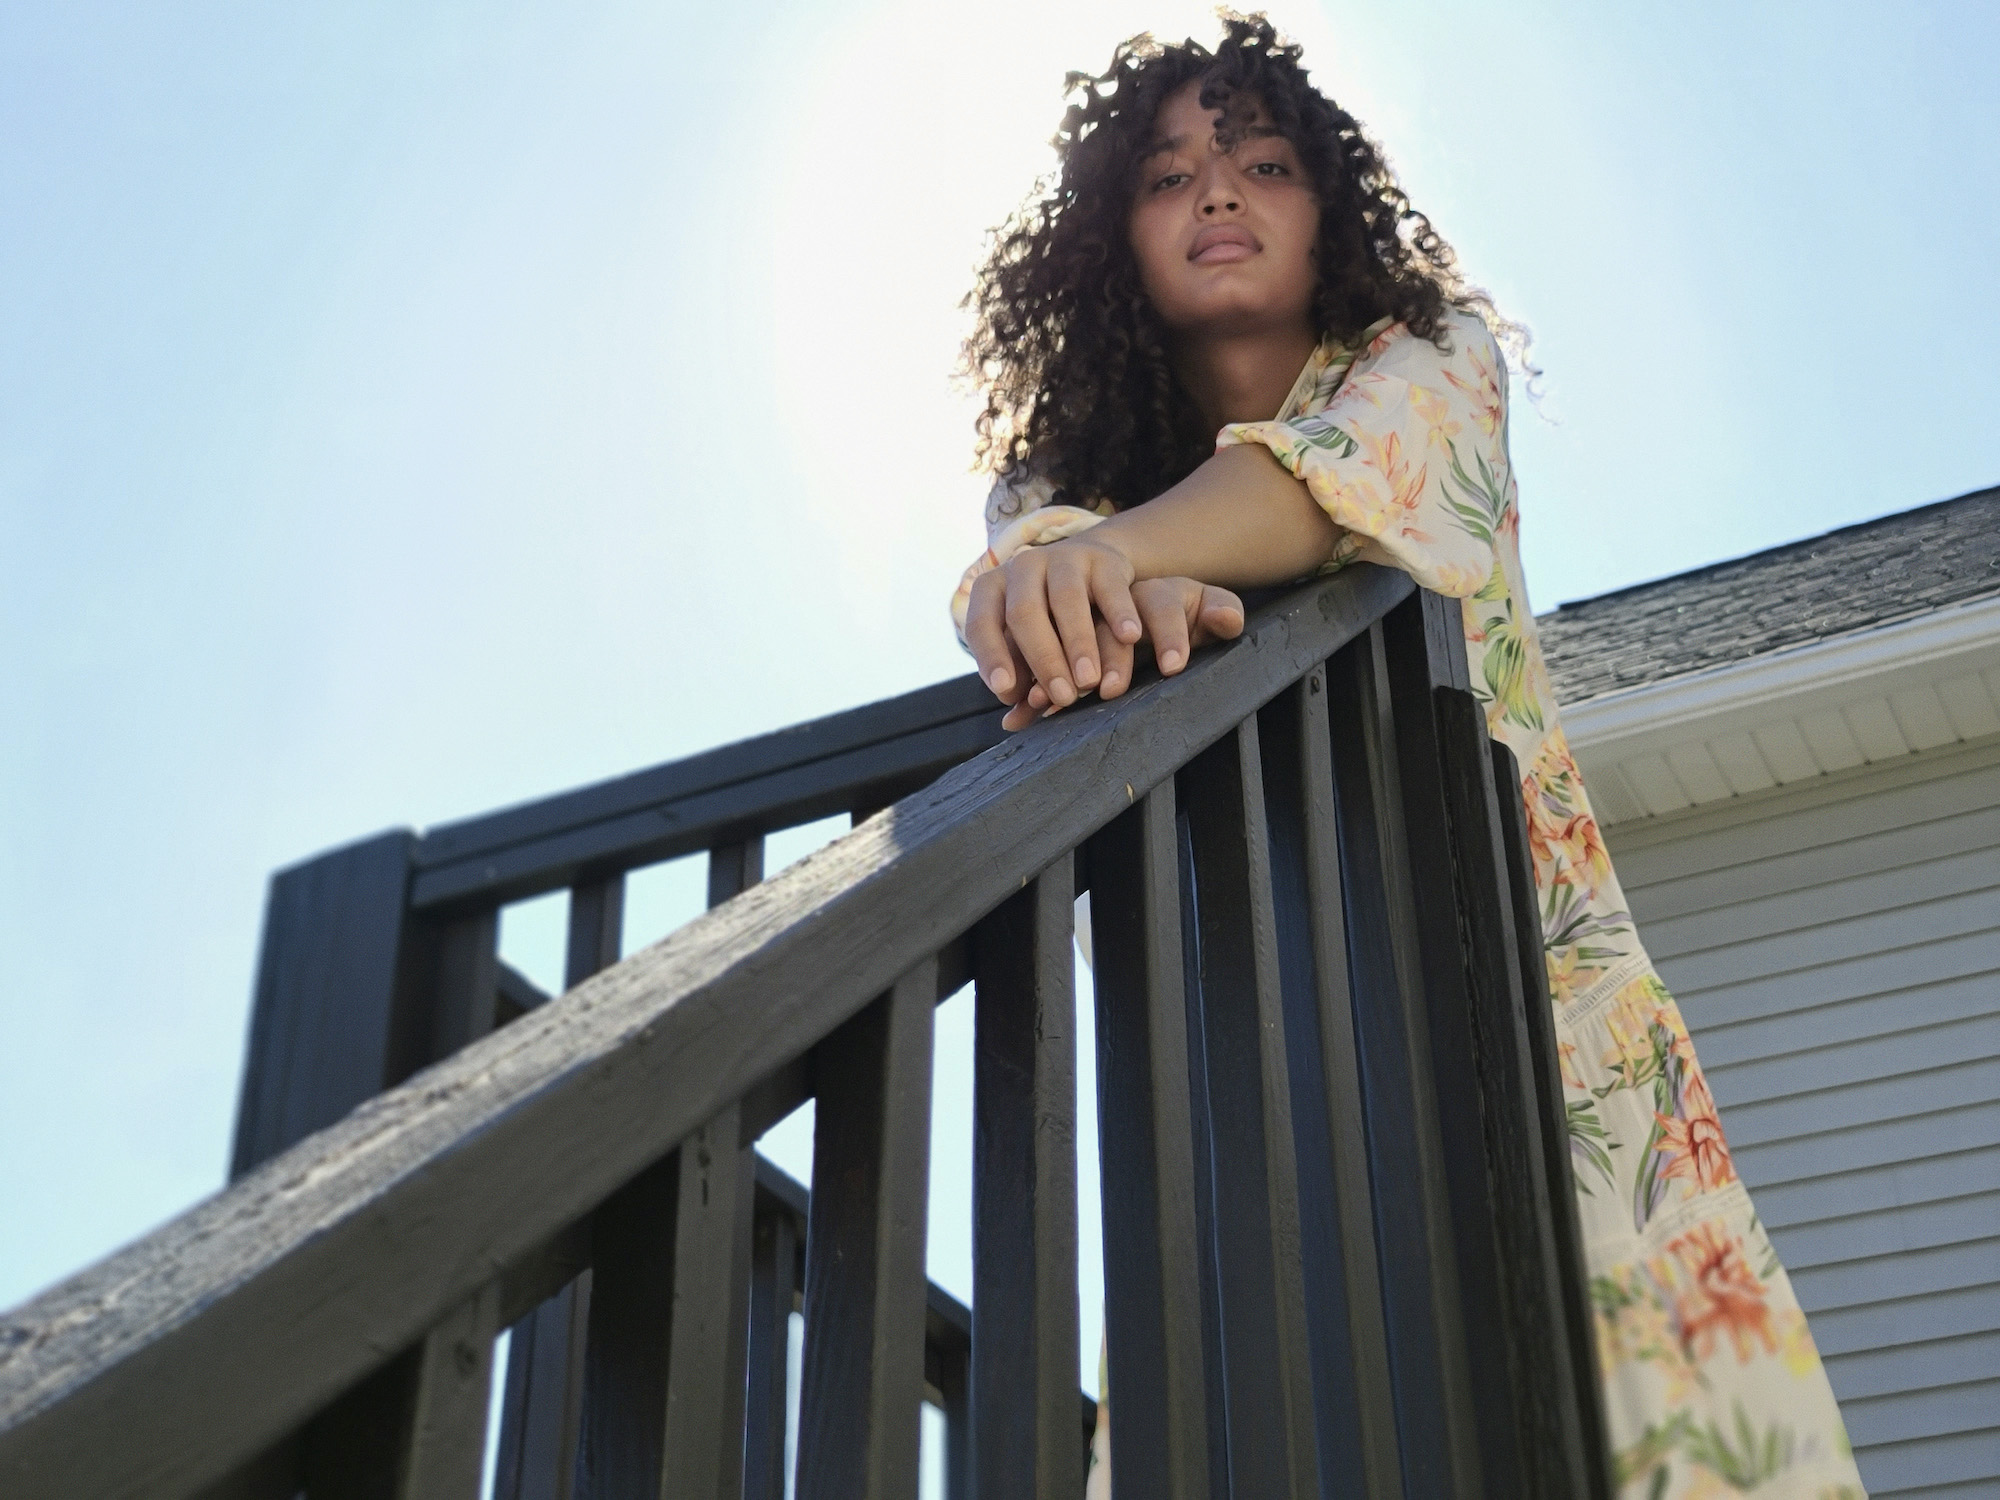 Indya Moore in sundress on stairs